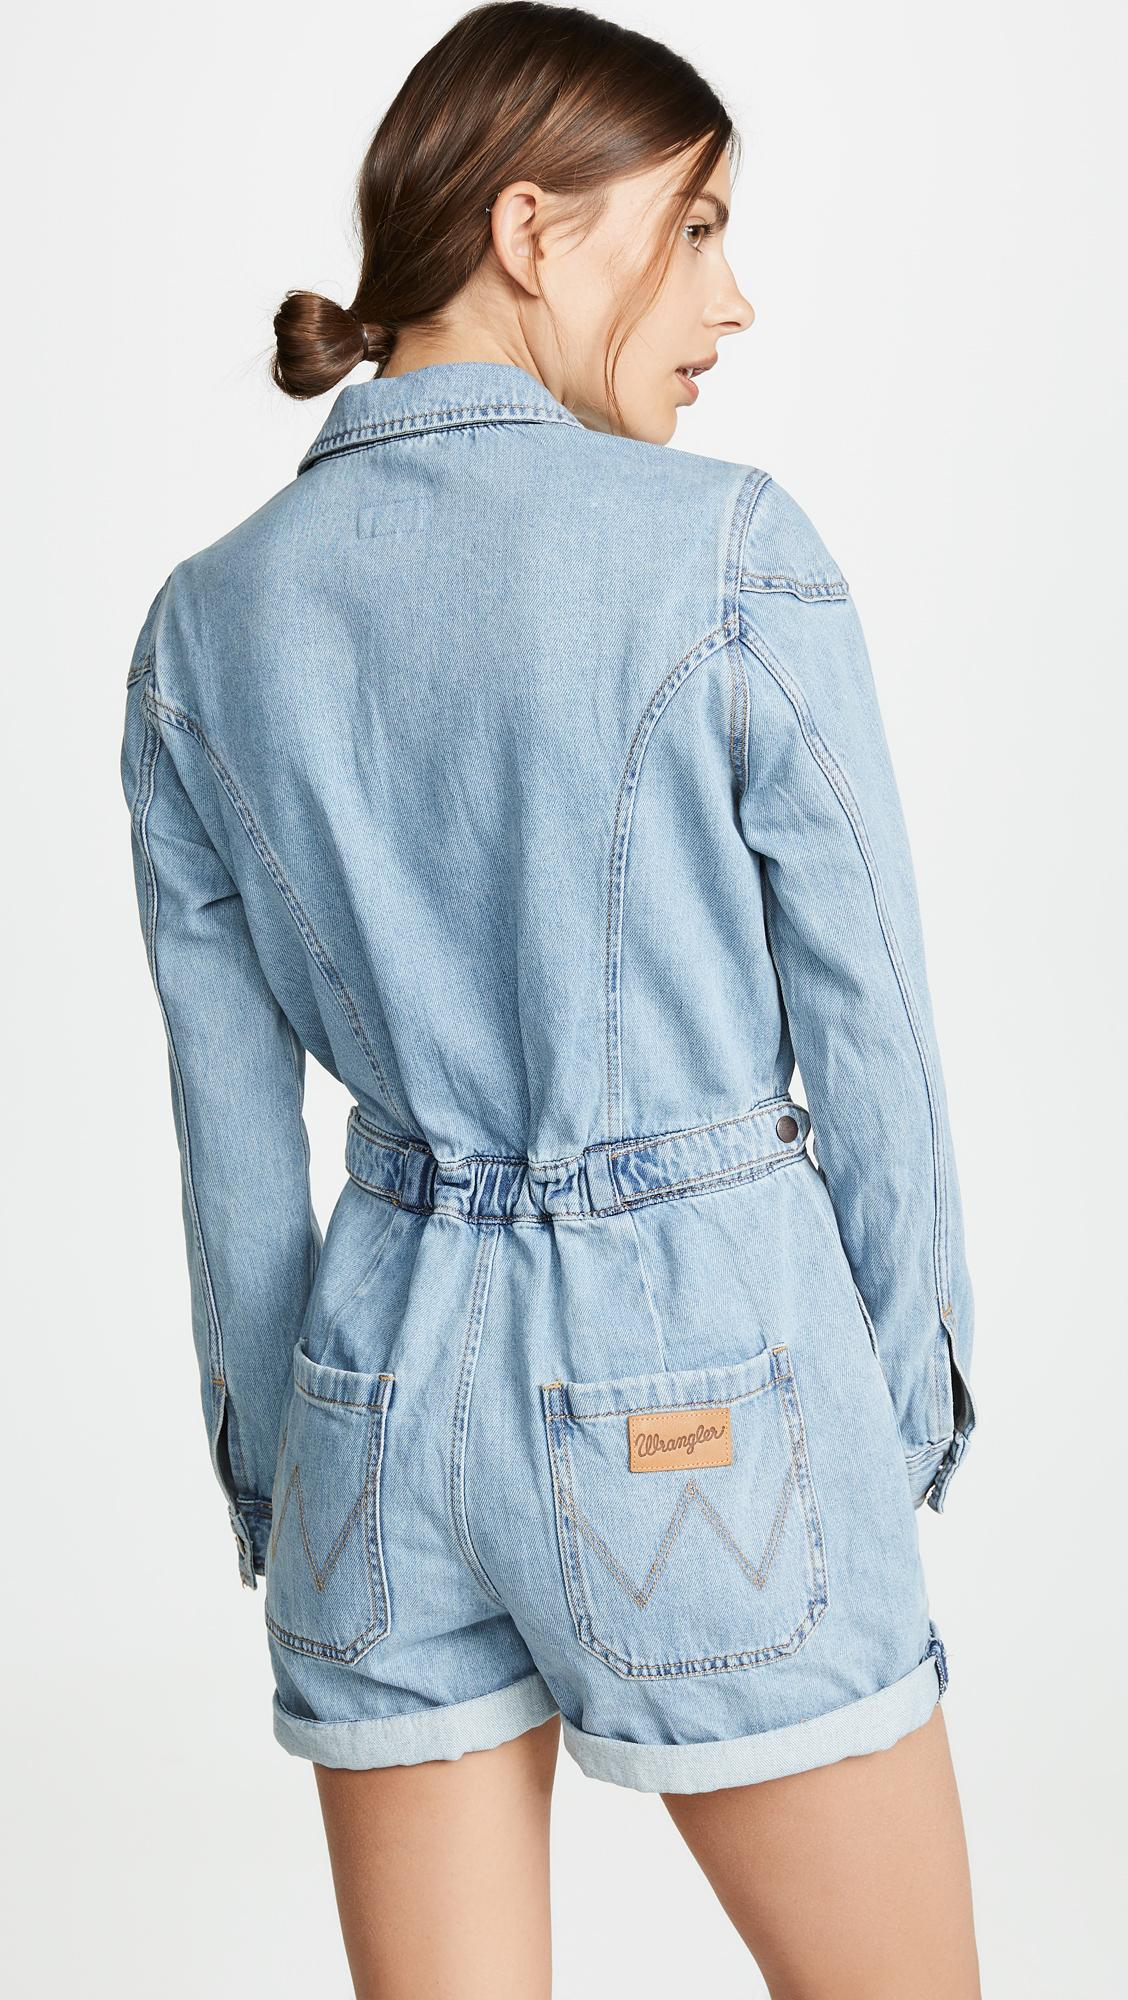 b0916a3b4be Wrangler - Blue Denim Romper - Lyst. View fullscreen